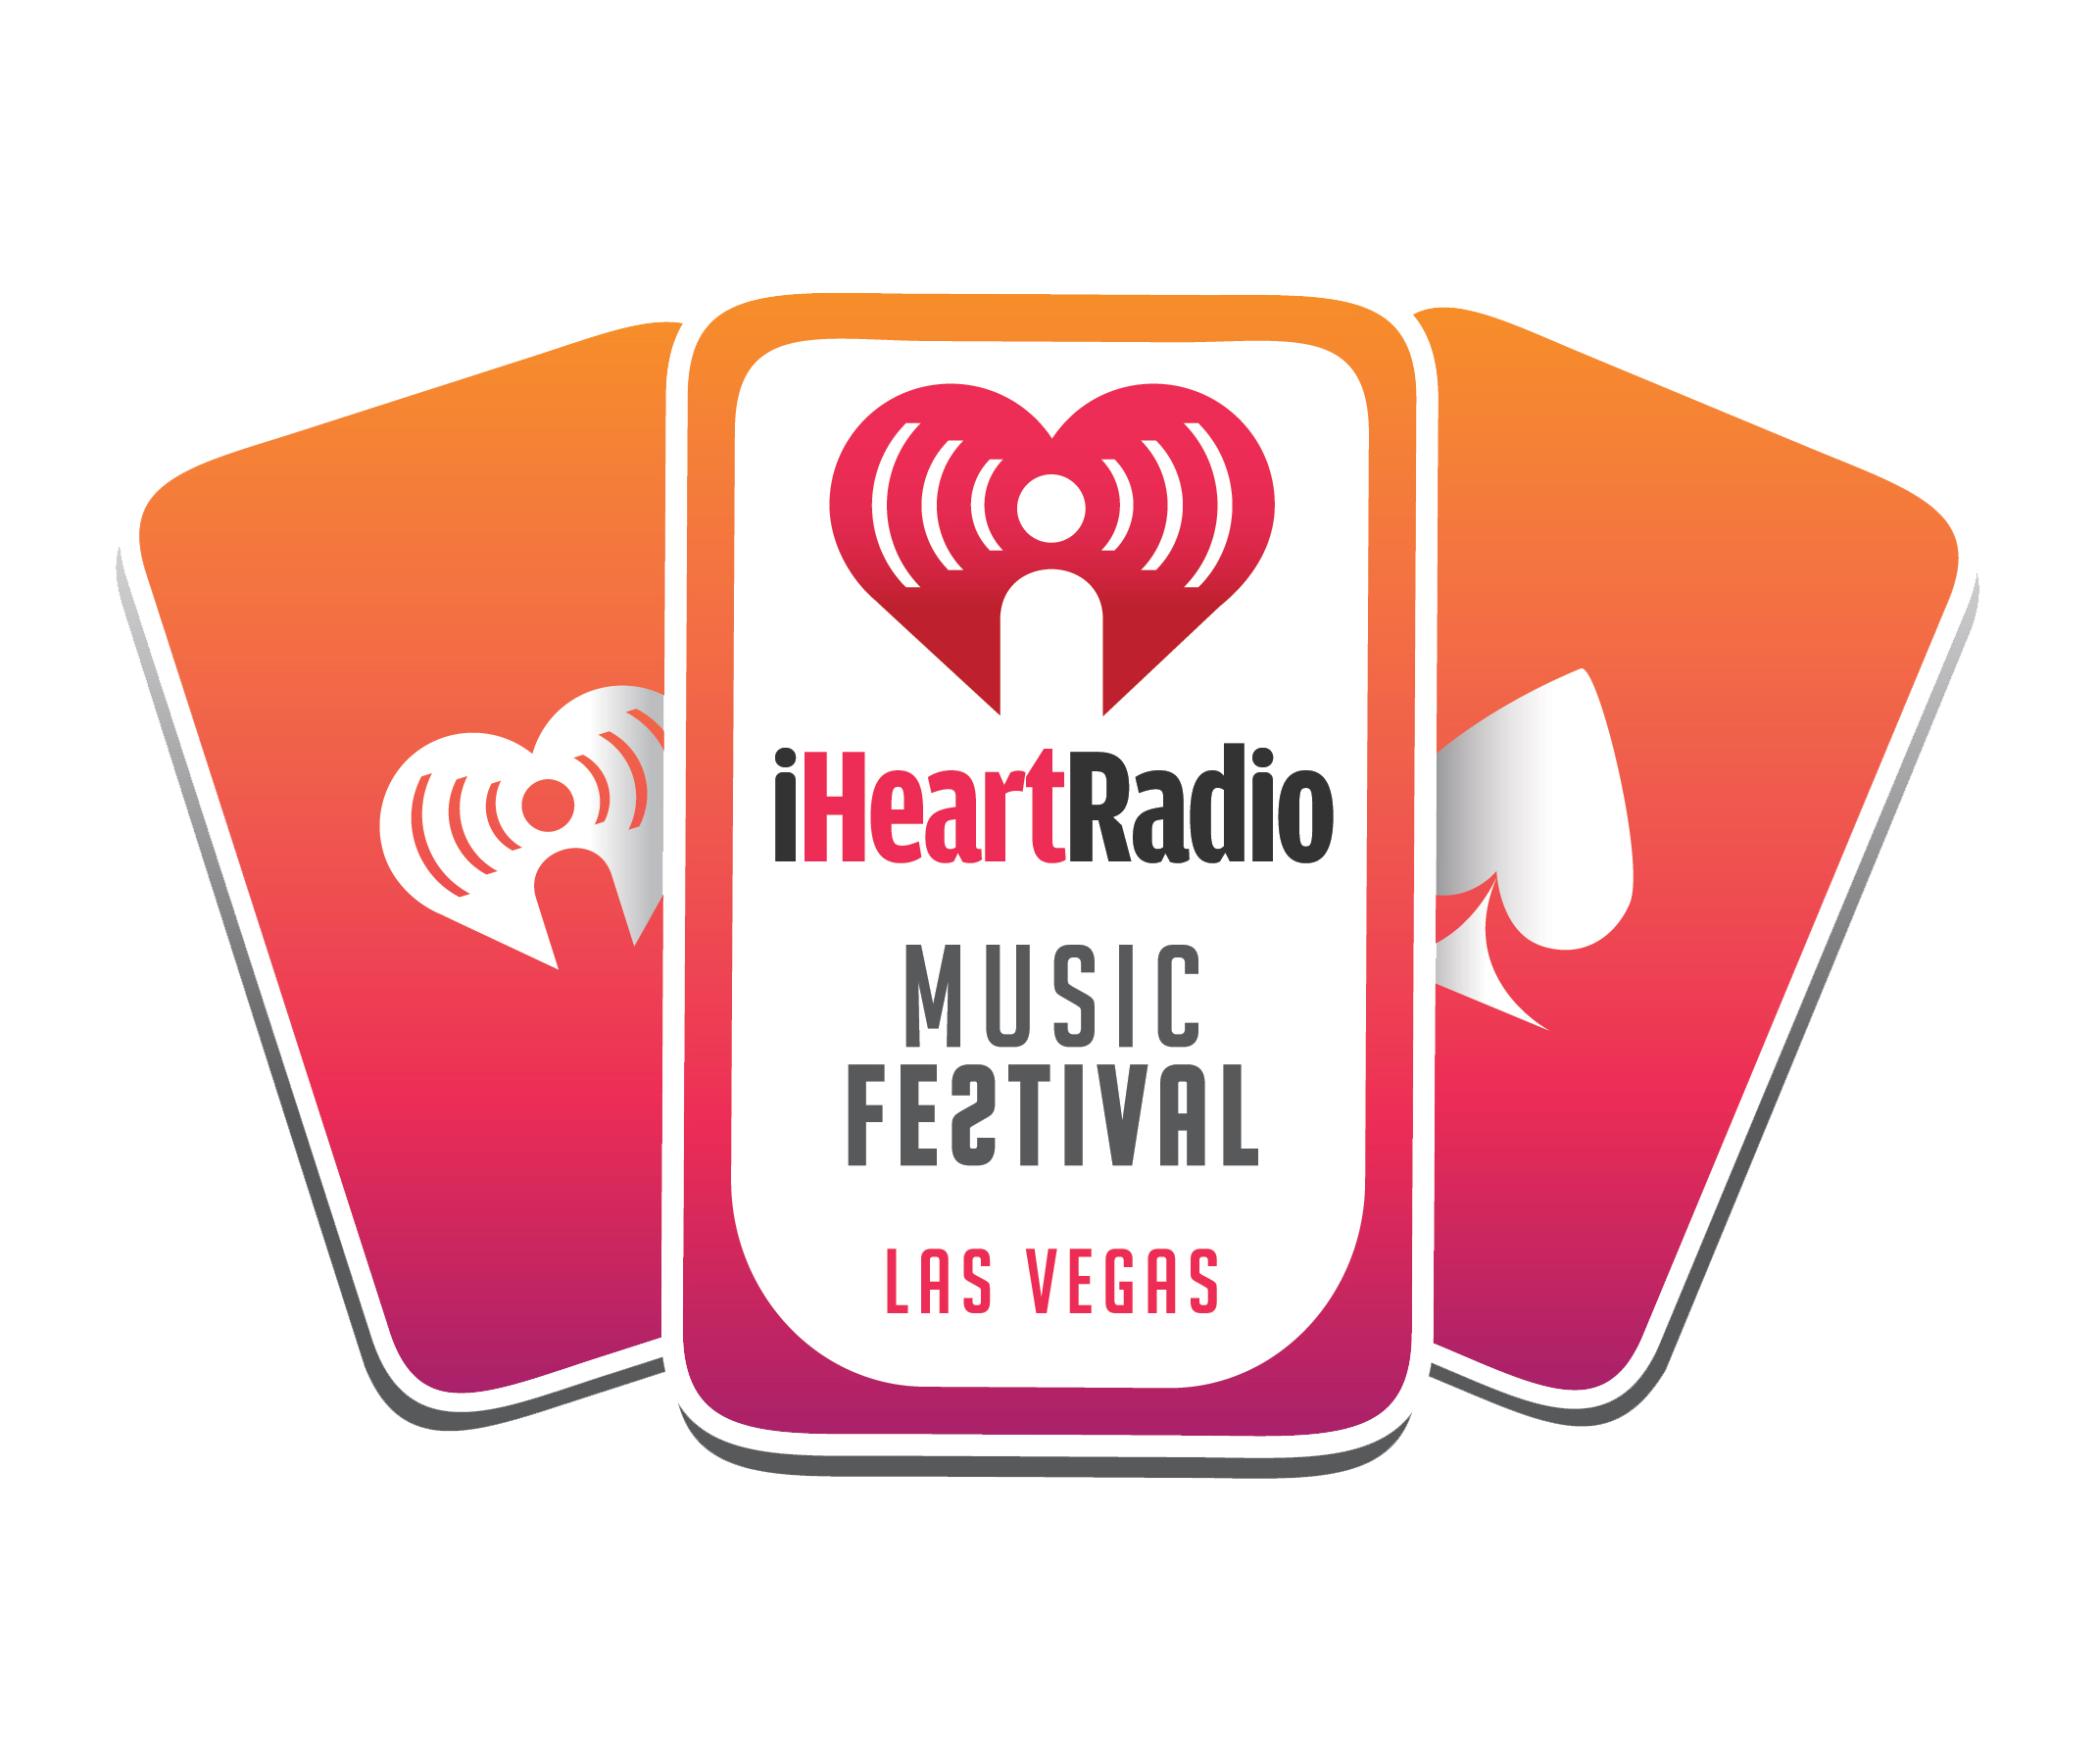 Iheart radio logo png. The scott brothers iheartradionewlogo